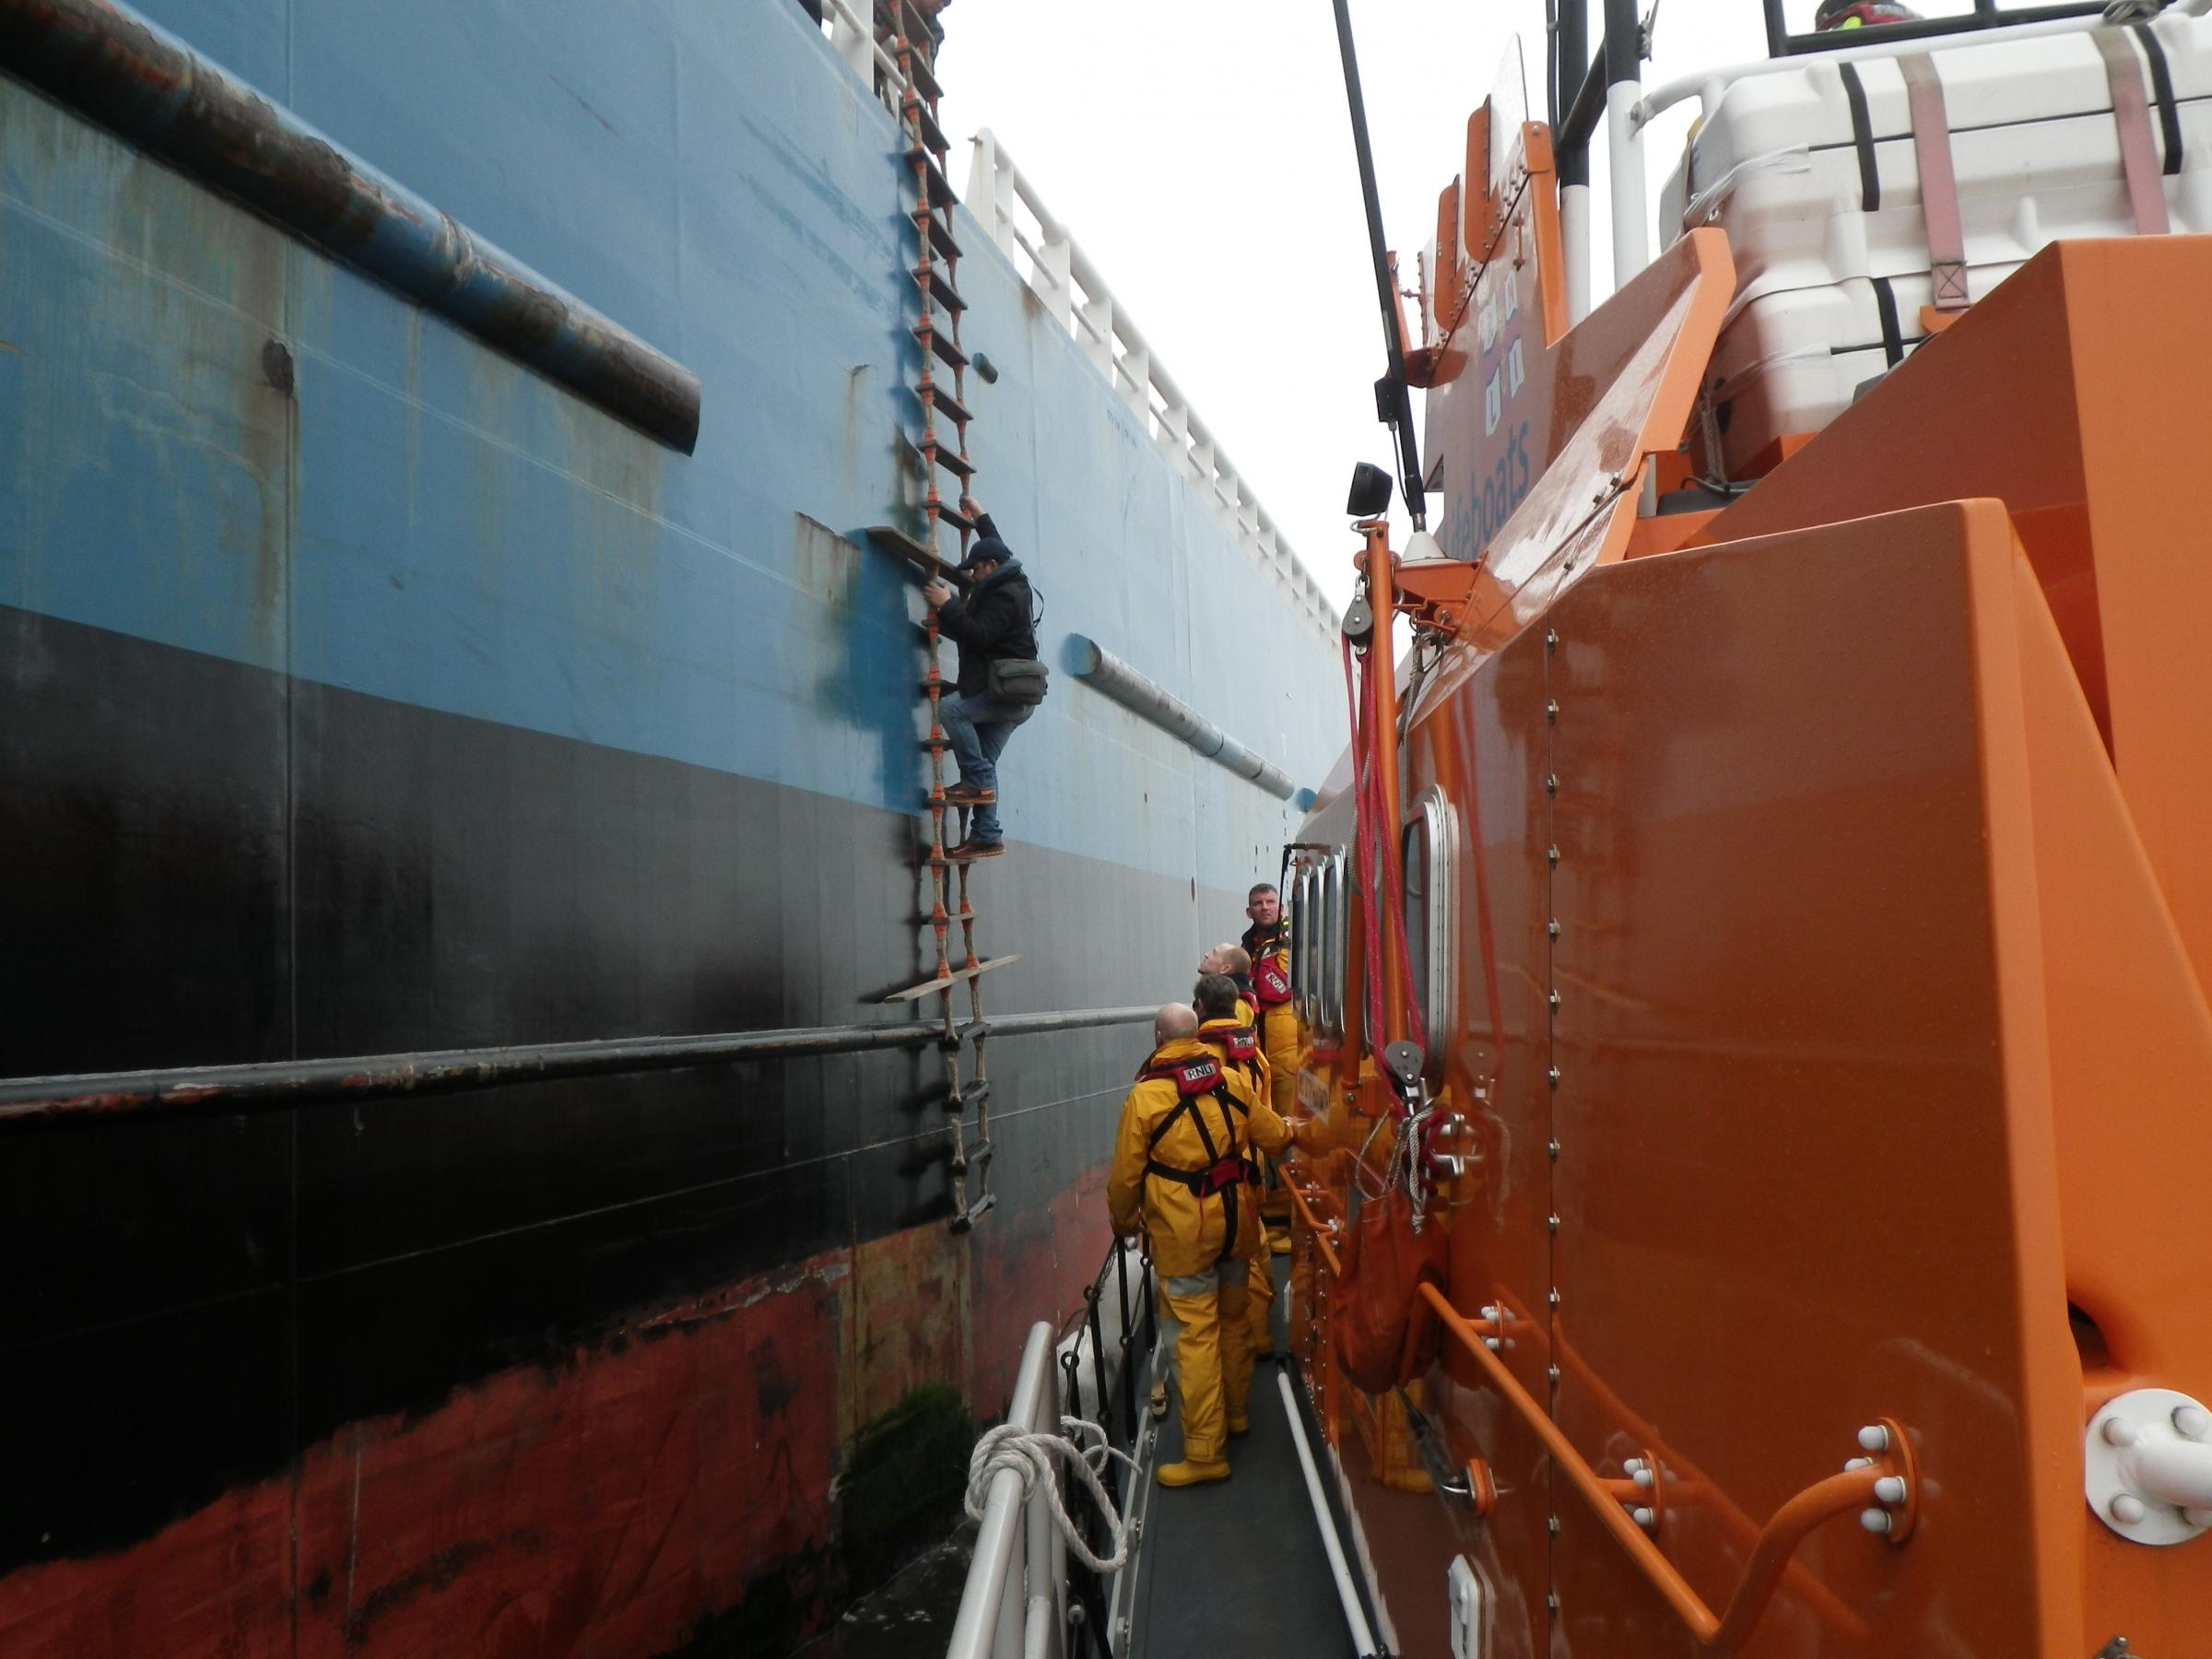 TEES PIC Injured tanker crew rescued